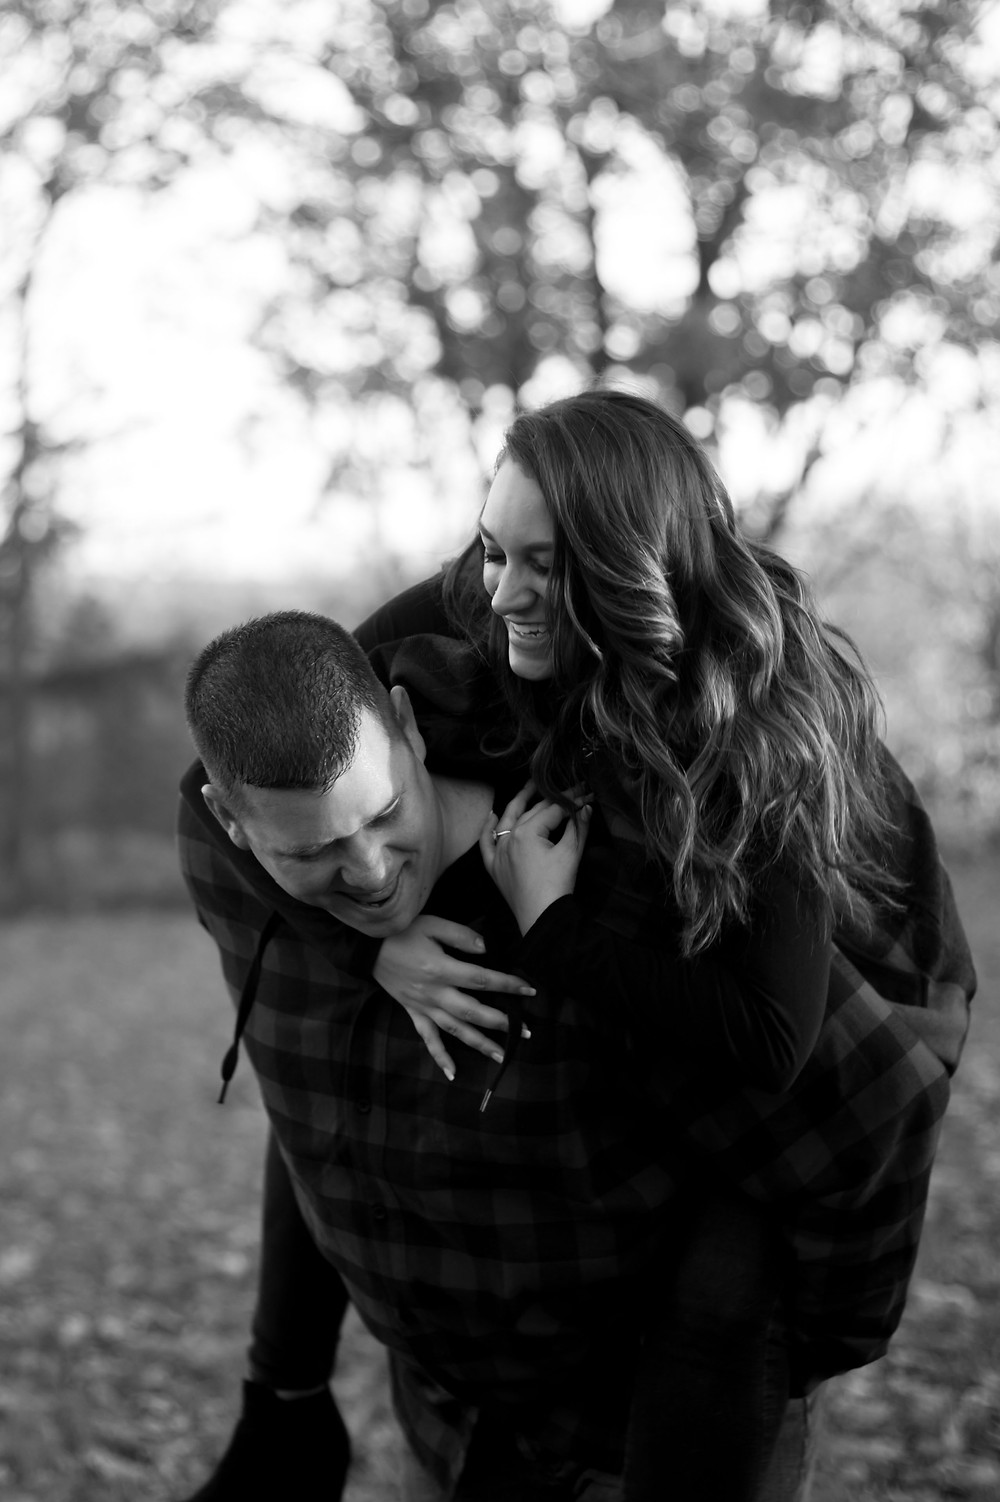 Geneseo NY fall golden hour couples engagement photo candid documentary intimate photography